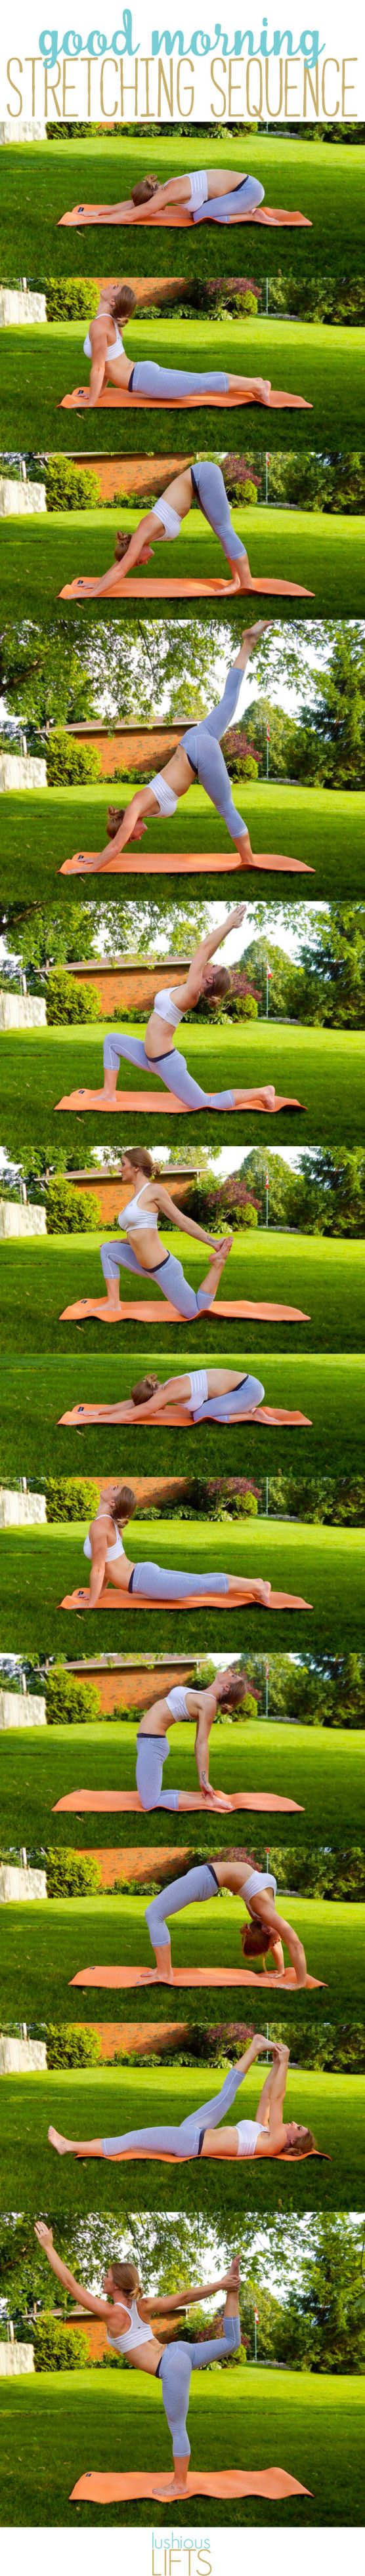 Good Morning Stretching Sequence